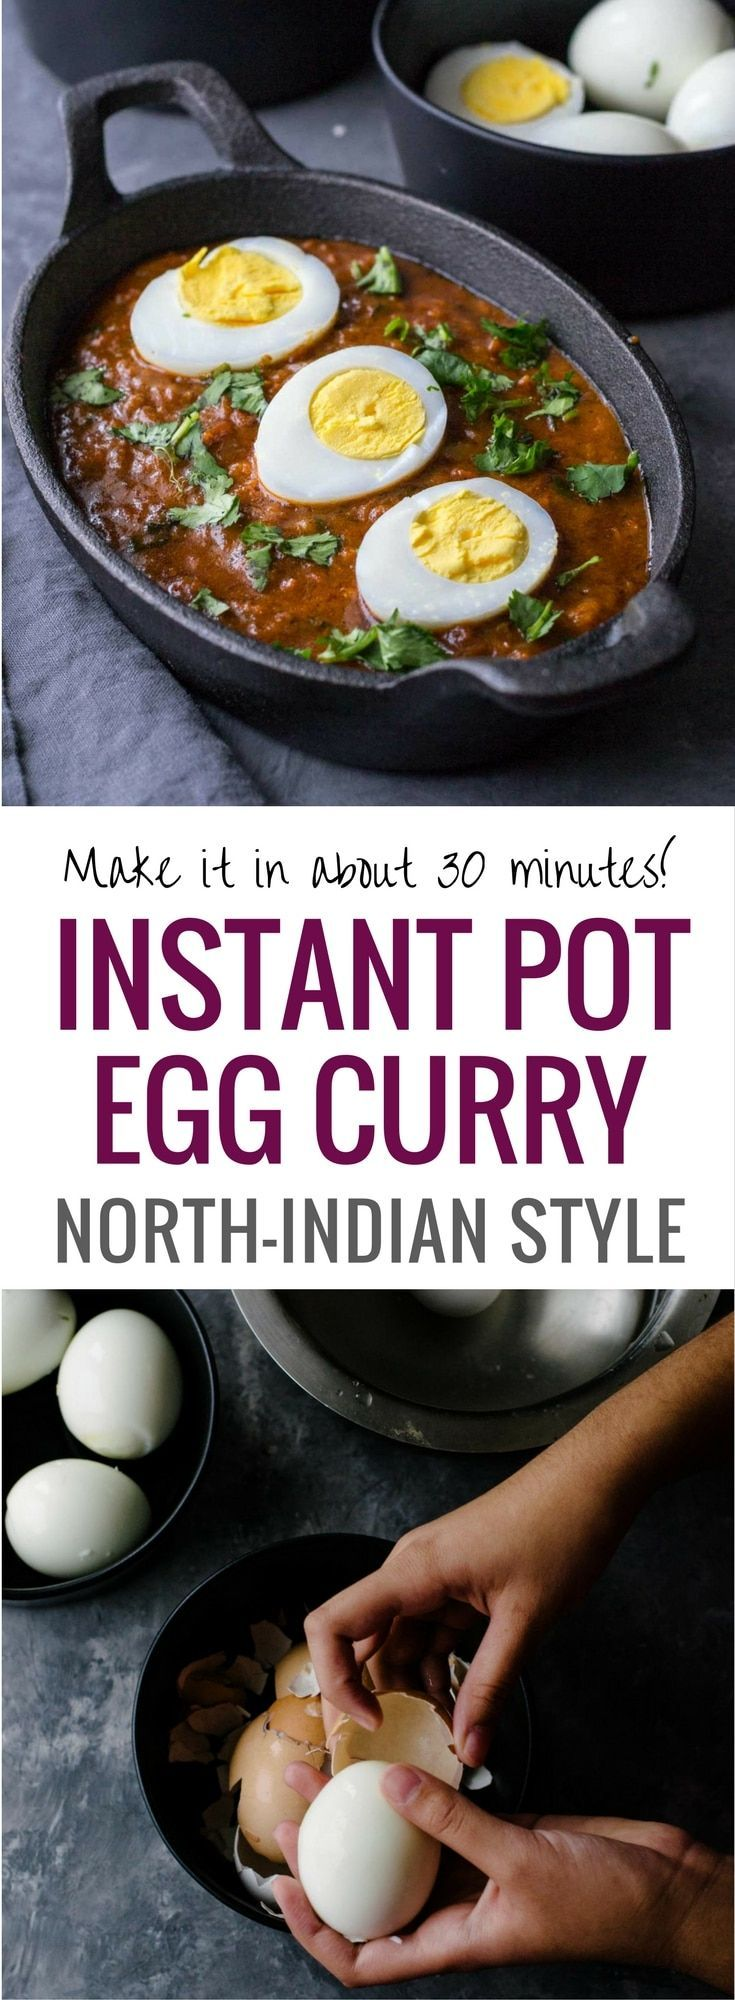 Easy Indian egg curry recipe - There are so many things that you can do with hard boiled eggs, but lately, we've been into this delicious North-Indian Punjabi style egg curry that you can quickly make in an Instant Pot or stove top. Pair it with rice or rotis to make a complete meal.  Enrich it with coconut milk to make a creamy version.  #Indiancuisine #healthyindianrecipes #ethniccuisine #worldcuisine #indianfood #InstantPotRecipe via @simmertoslimmer